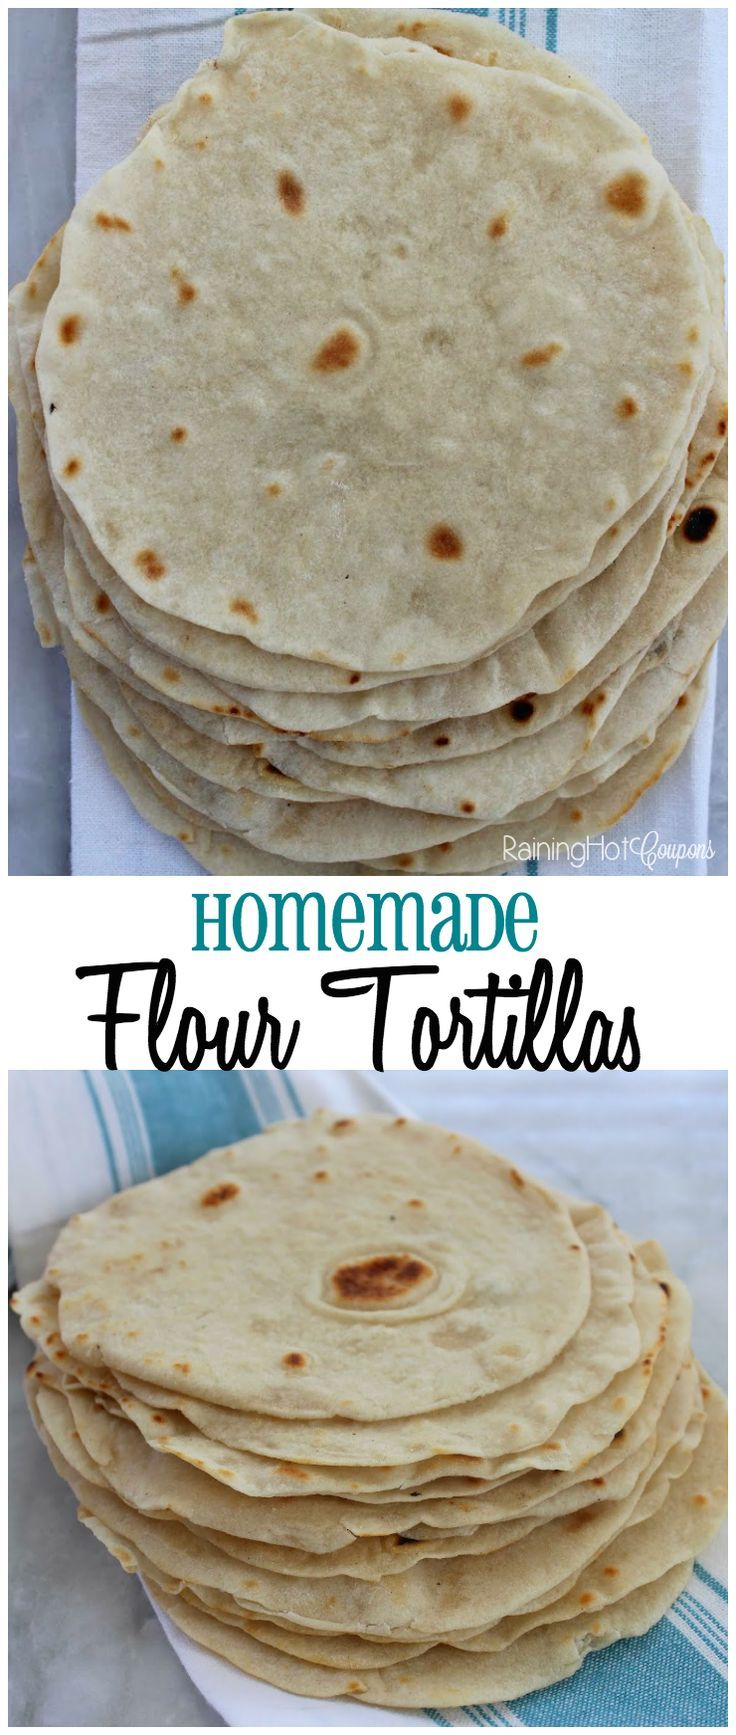 Homemade Flour Tortillas - Raining Hot Coupons